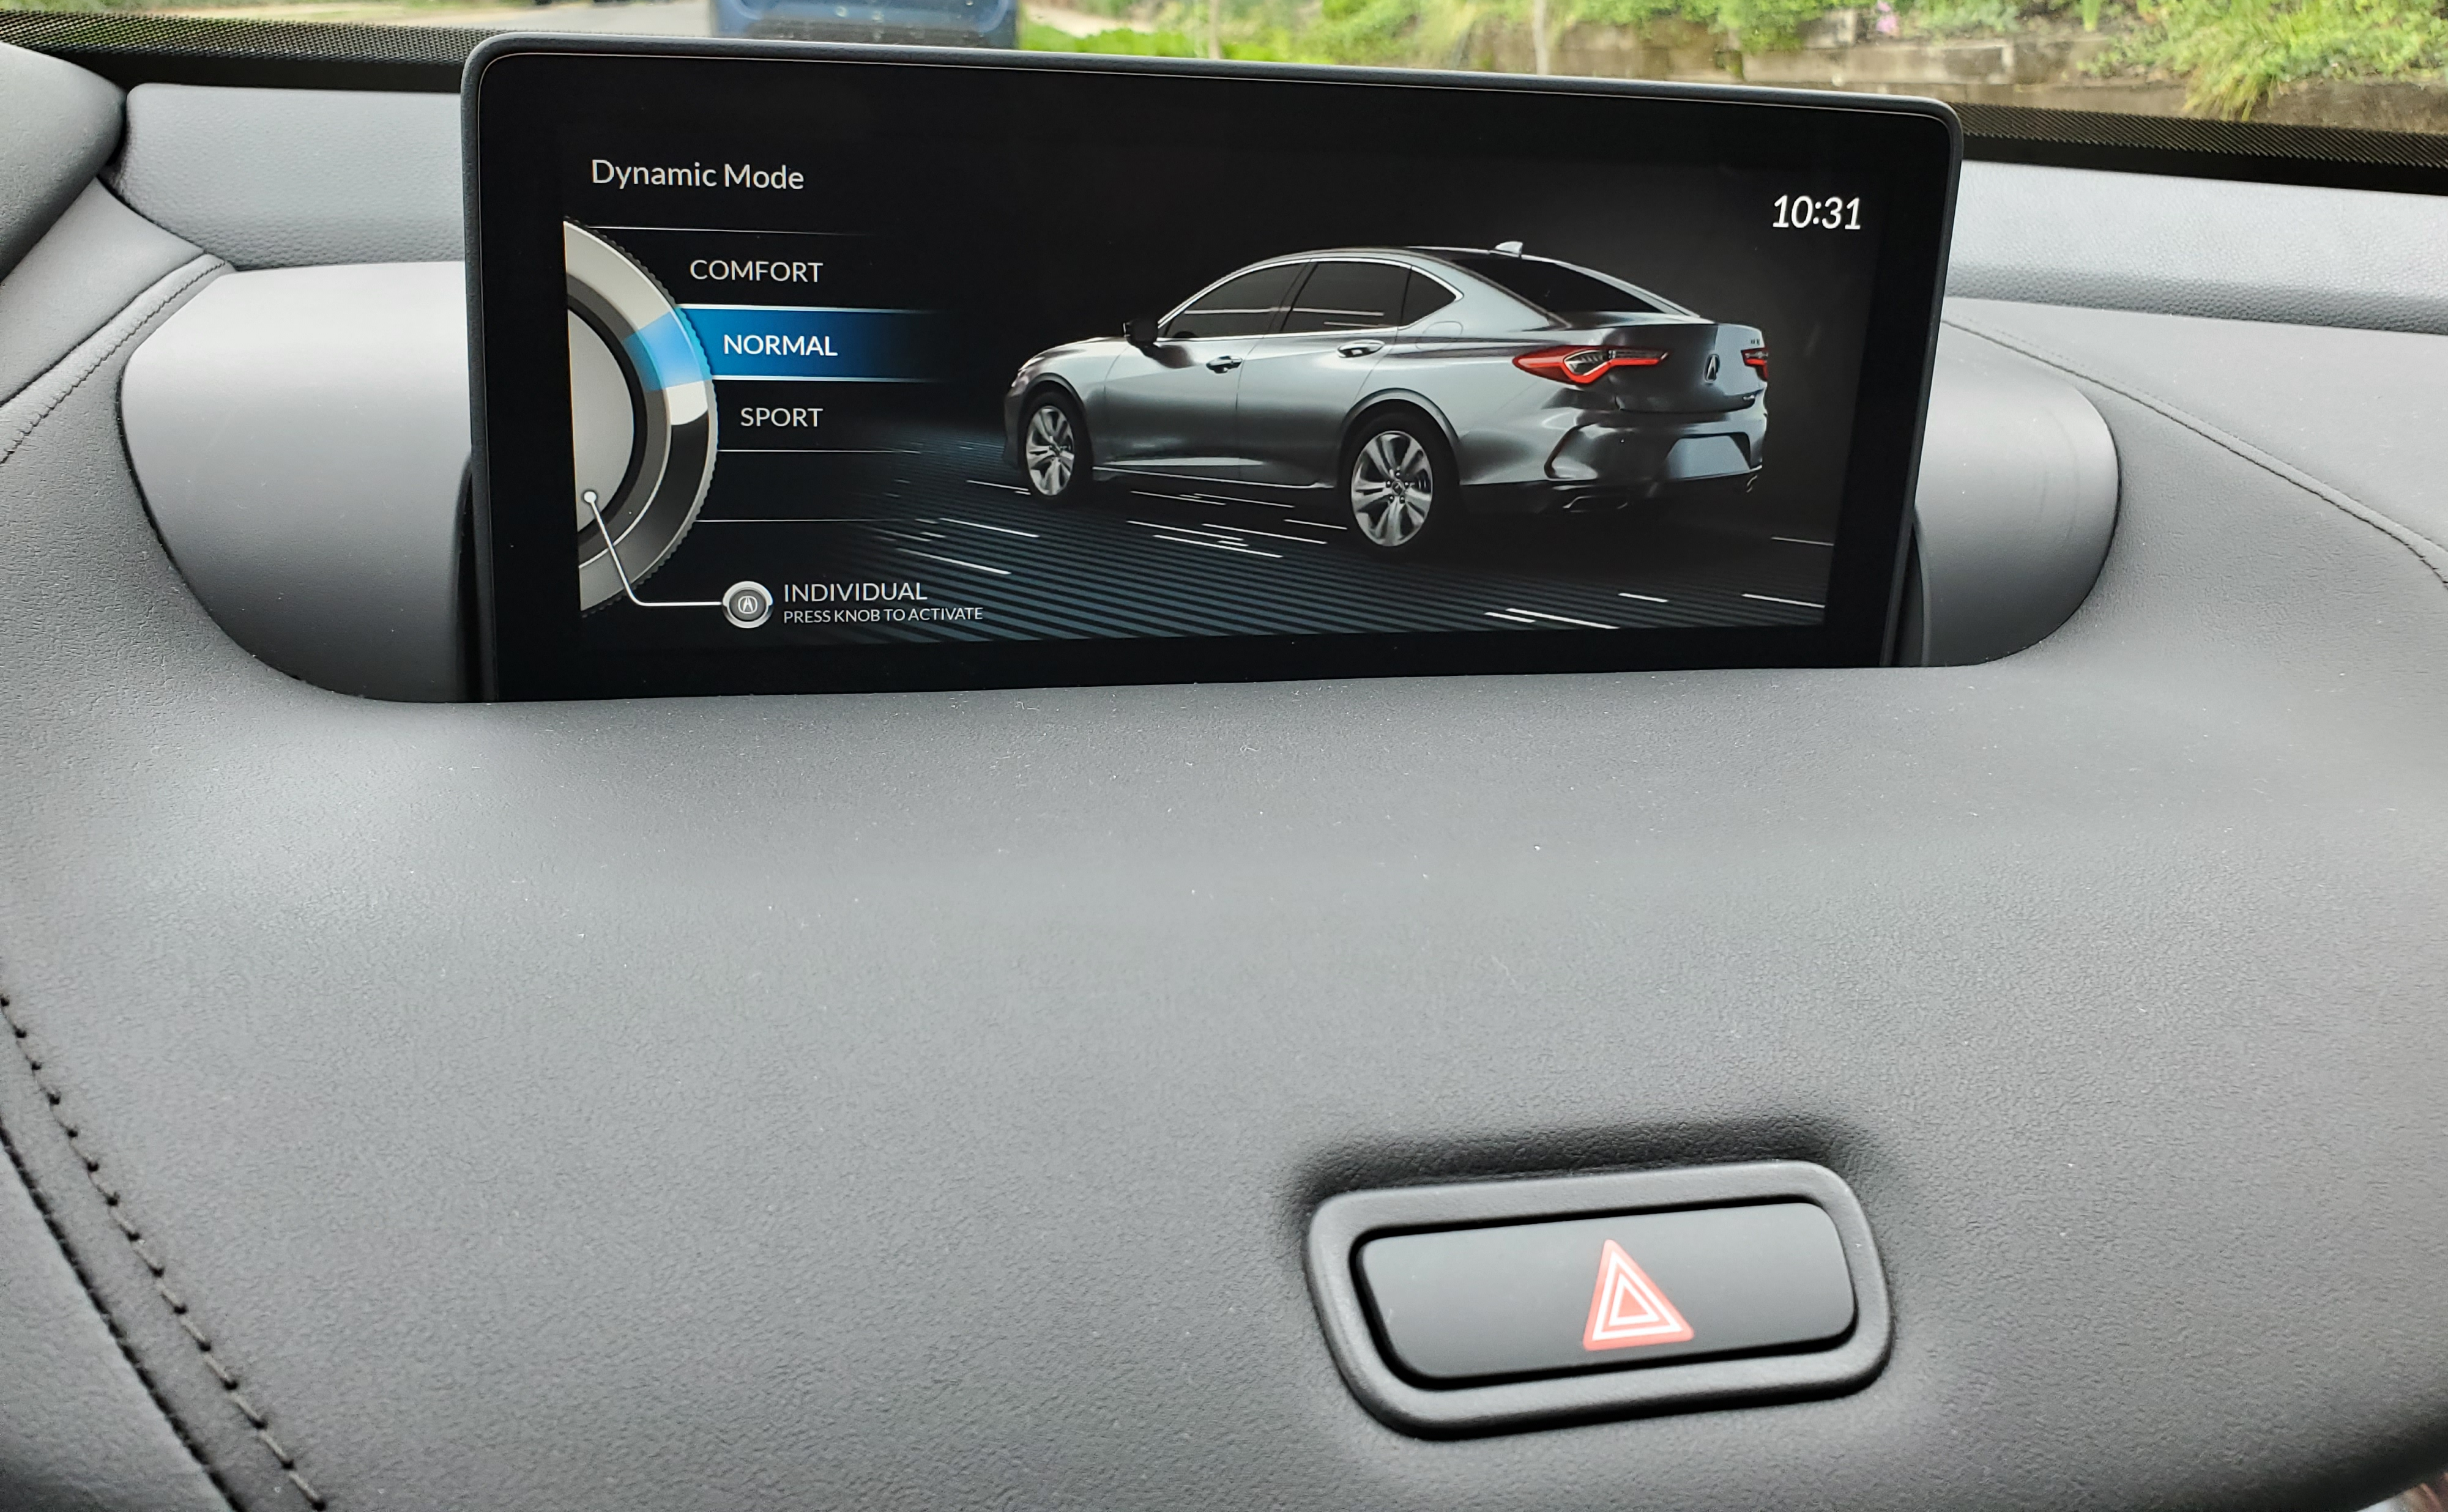 2021 Acura TLX Dynamic Normal Mode Display